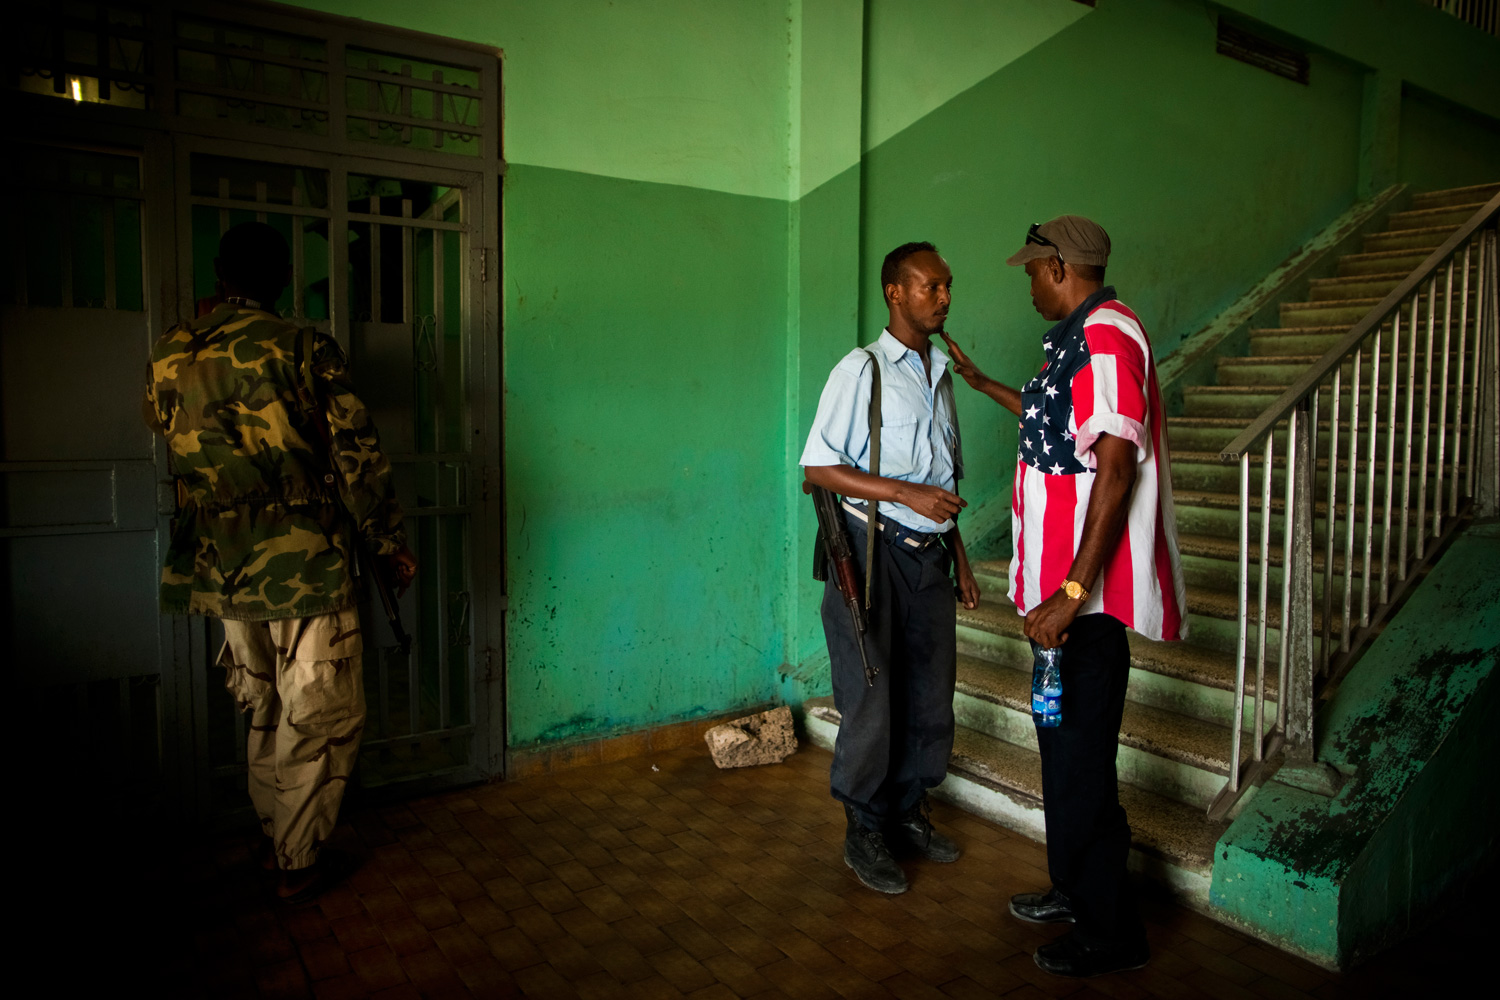 A Somali man wearing an American flag shirt talks to a policeman inside a building at the port in Mogadishu.